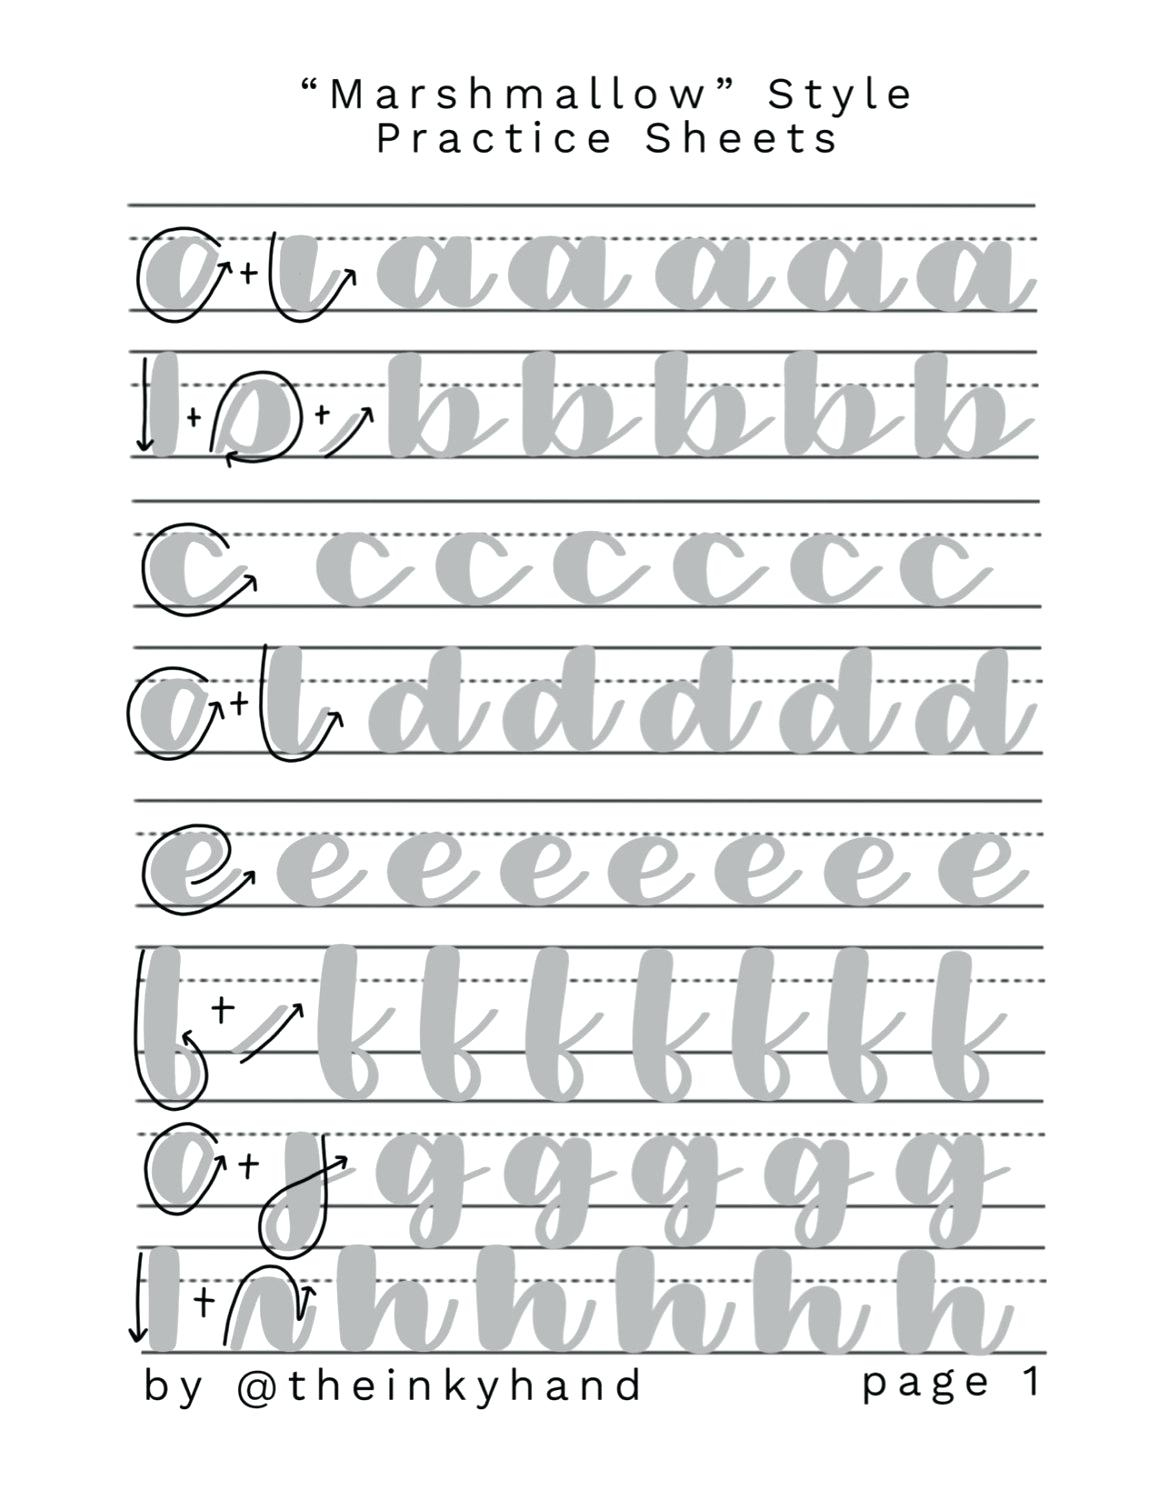 Calligraphy Fonts Practice Sheets Image 0 Free Calligraphy Font - Modern Calligraphy Practice Sheets Printable Free